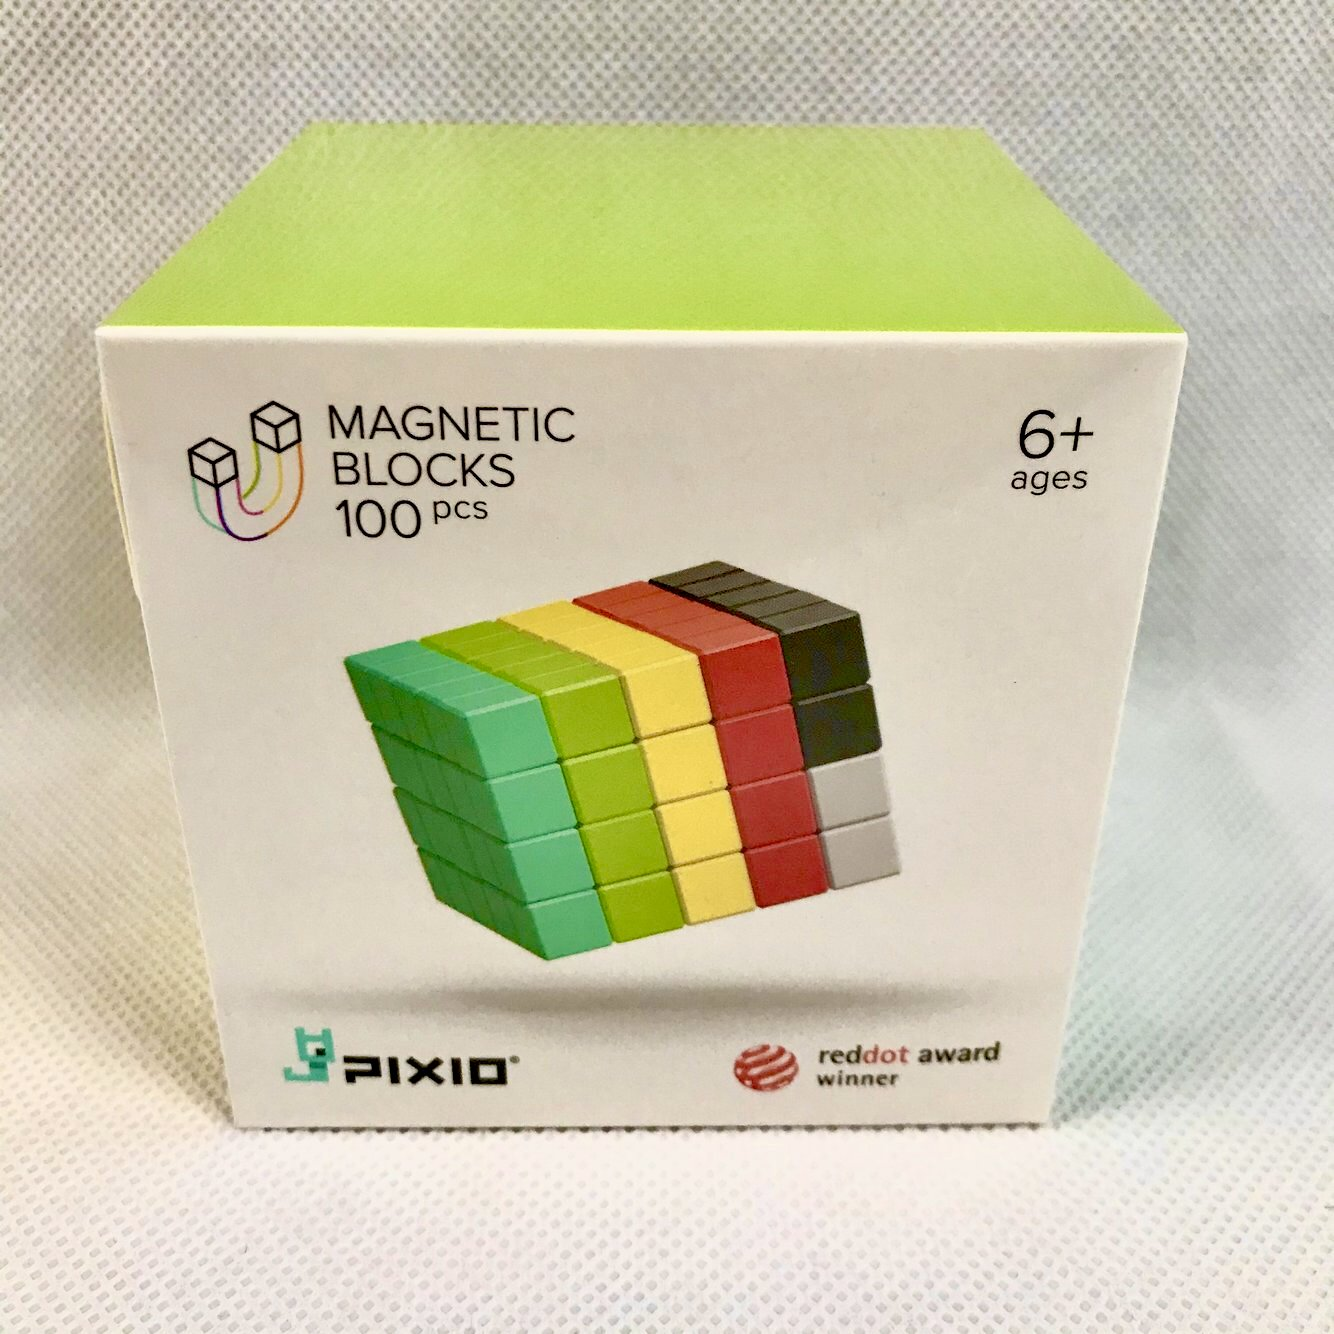 Magnets 100pc PIXIO